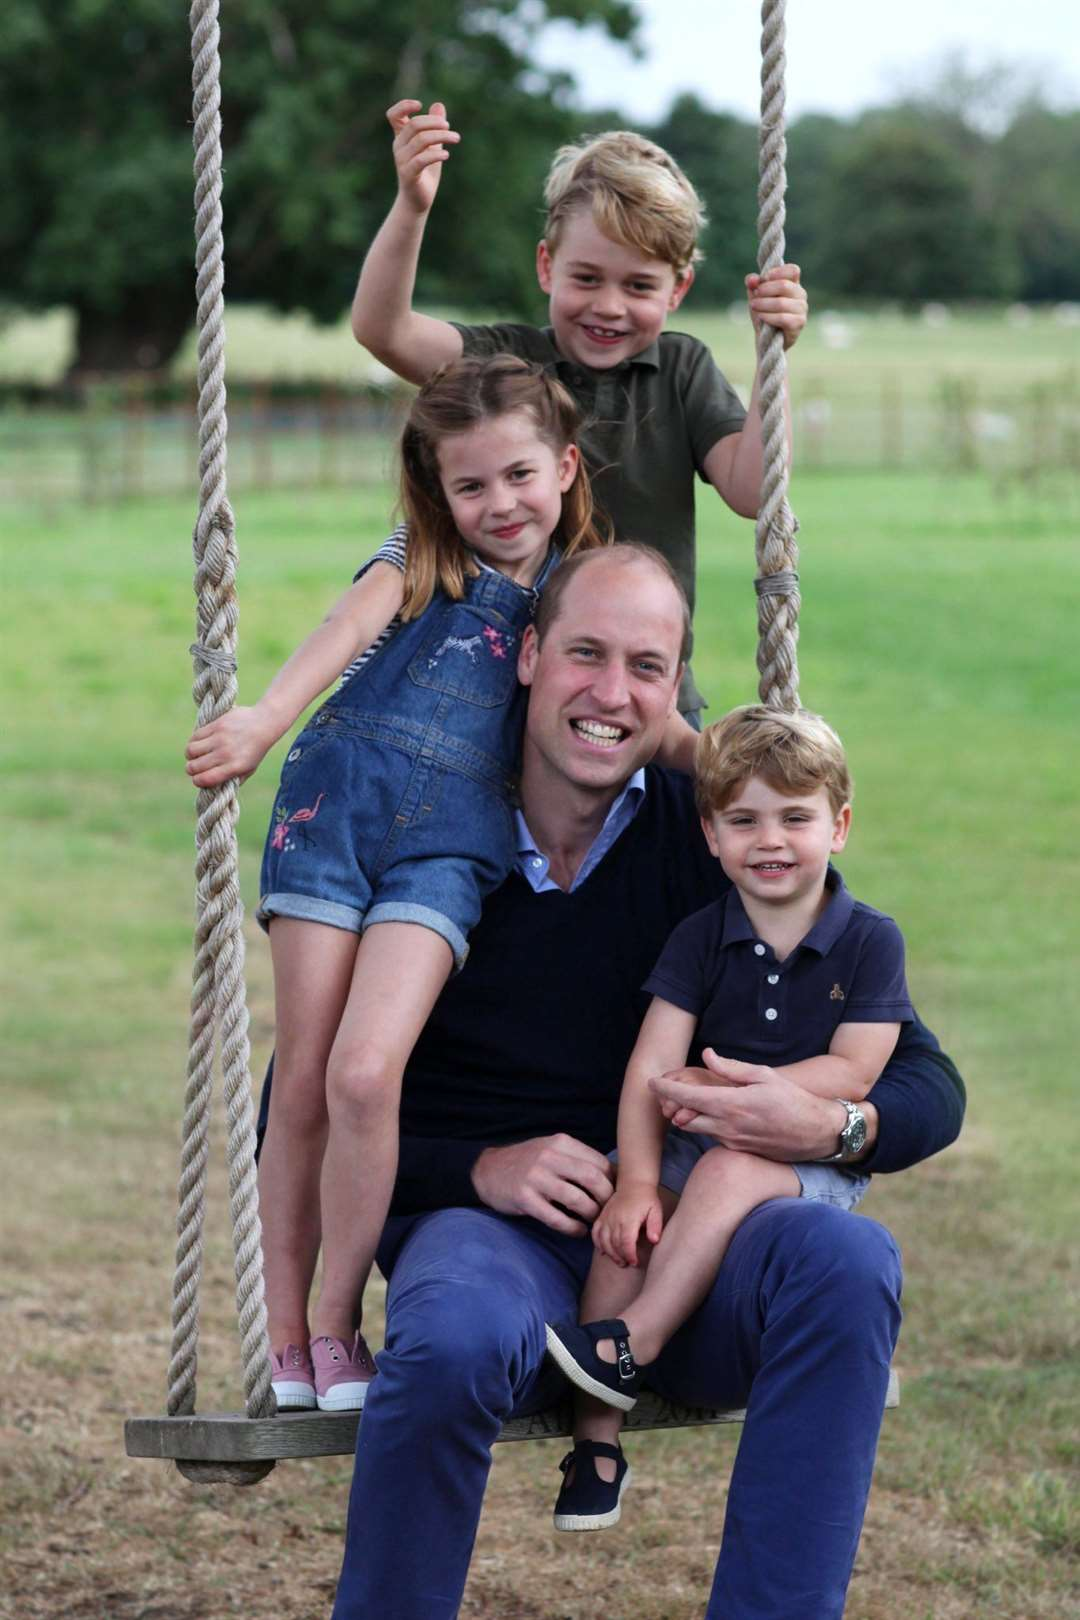 The Duke and Duchess of Cambridge are very pleased to share a new picture of The Duke with Prince George, Princess Charlotte and Prince Louis ahead of The Duke's birthday. Picture: DUCHESS OF CAMBRIDGE/TWITTER (37021282)